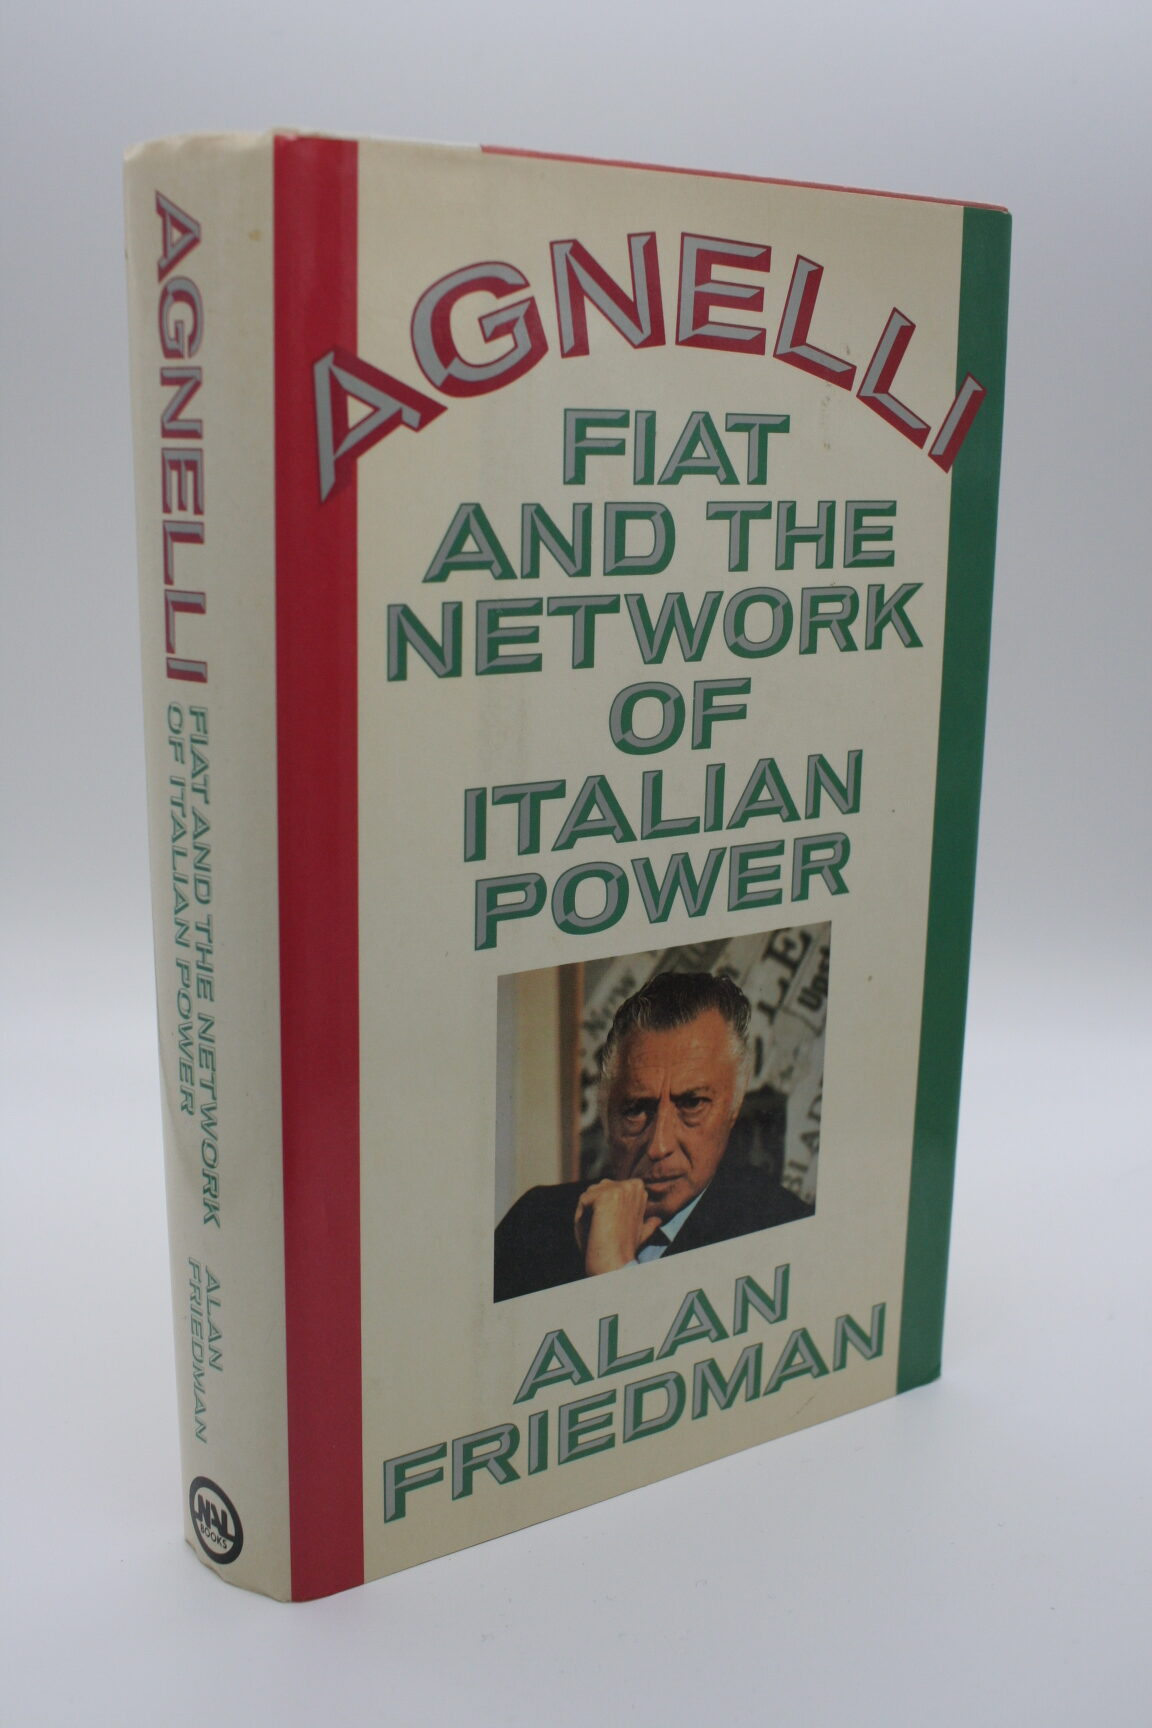 Agnelli: Fiat and the Network of Italian Power - Alan Friedman